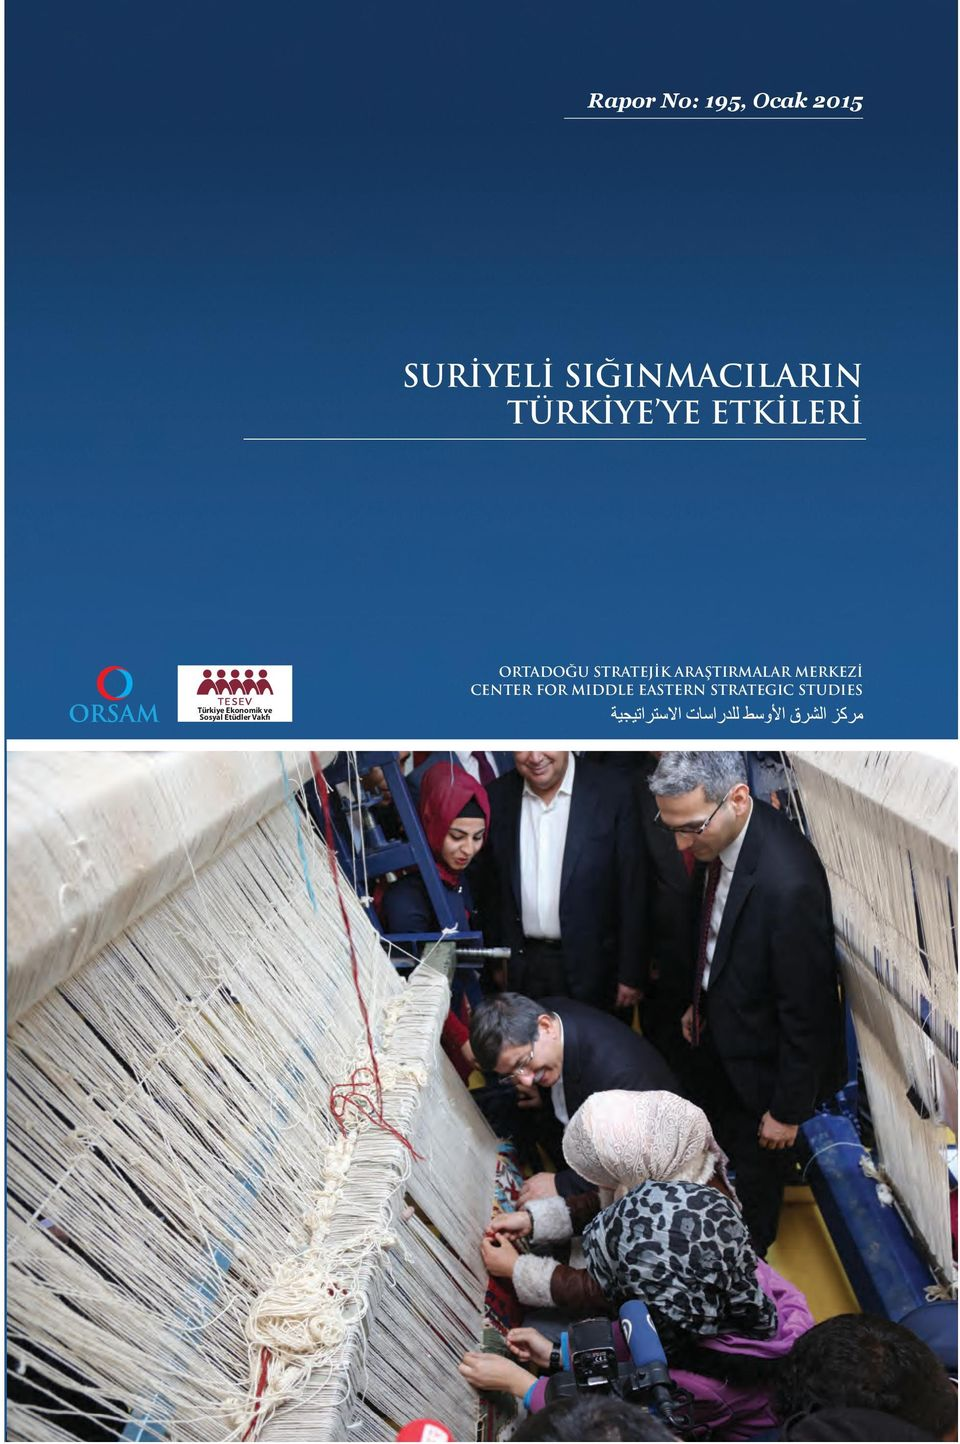 MERKEZİ CENTER FOR MIDDLE EASTERN